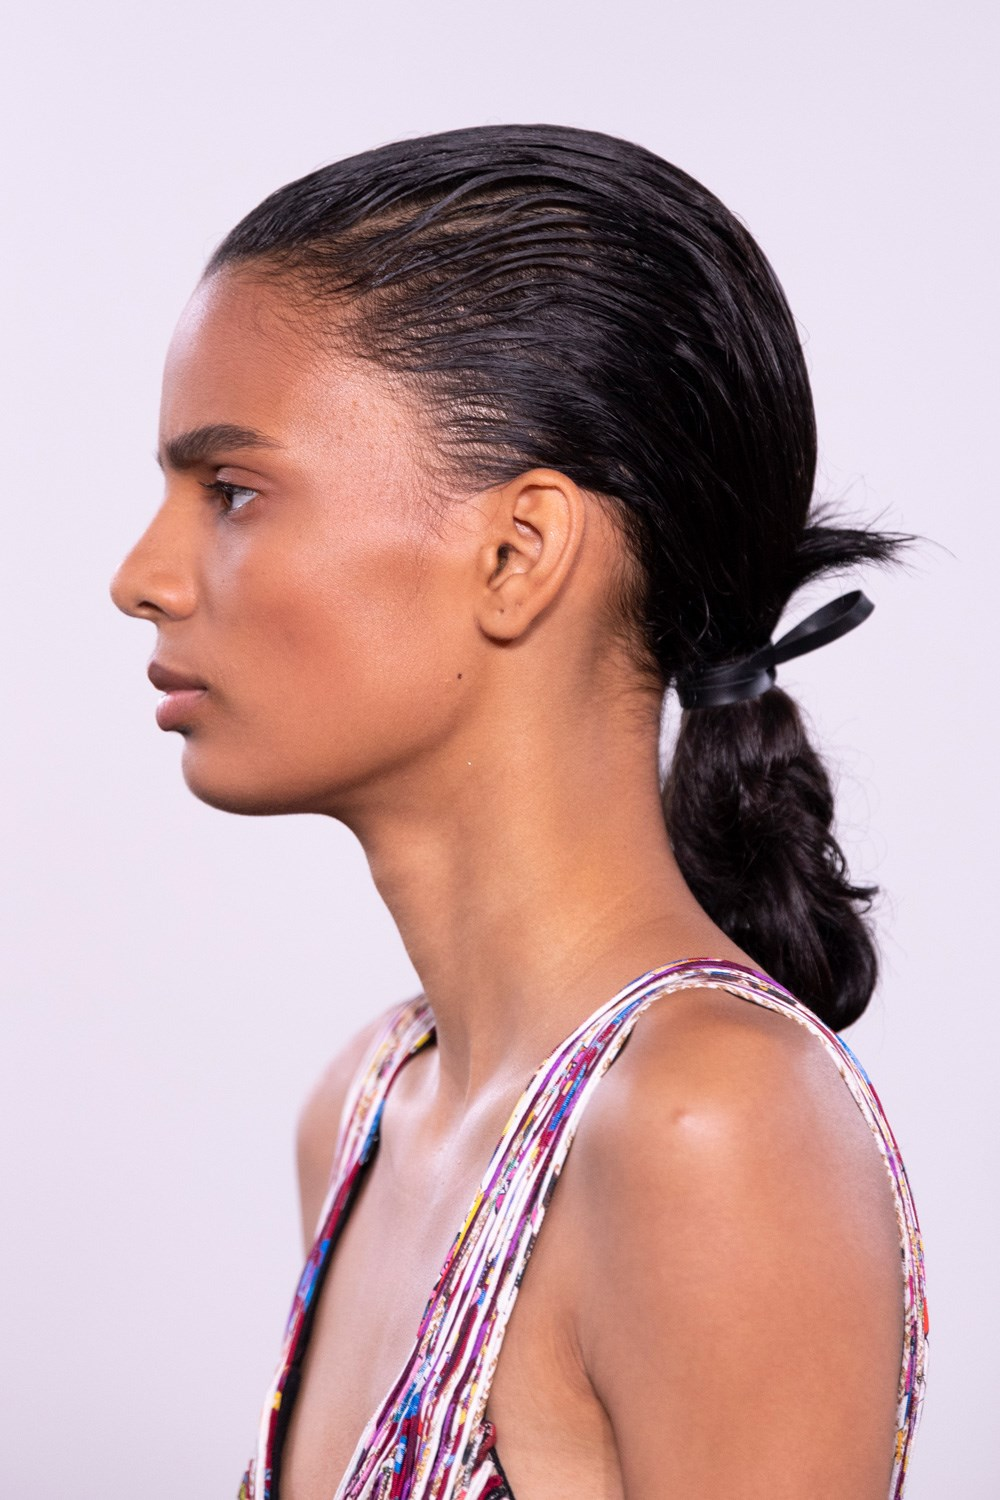 Beauty Hair Fashion Trend Spring 2020